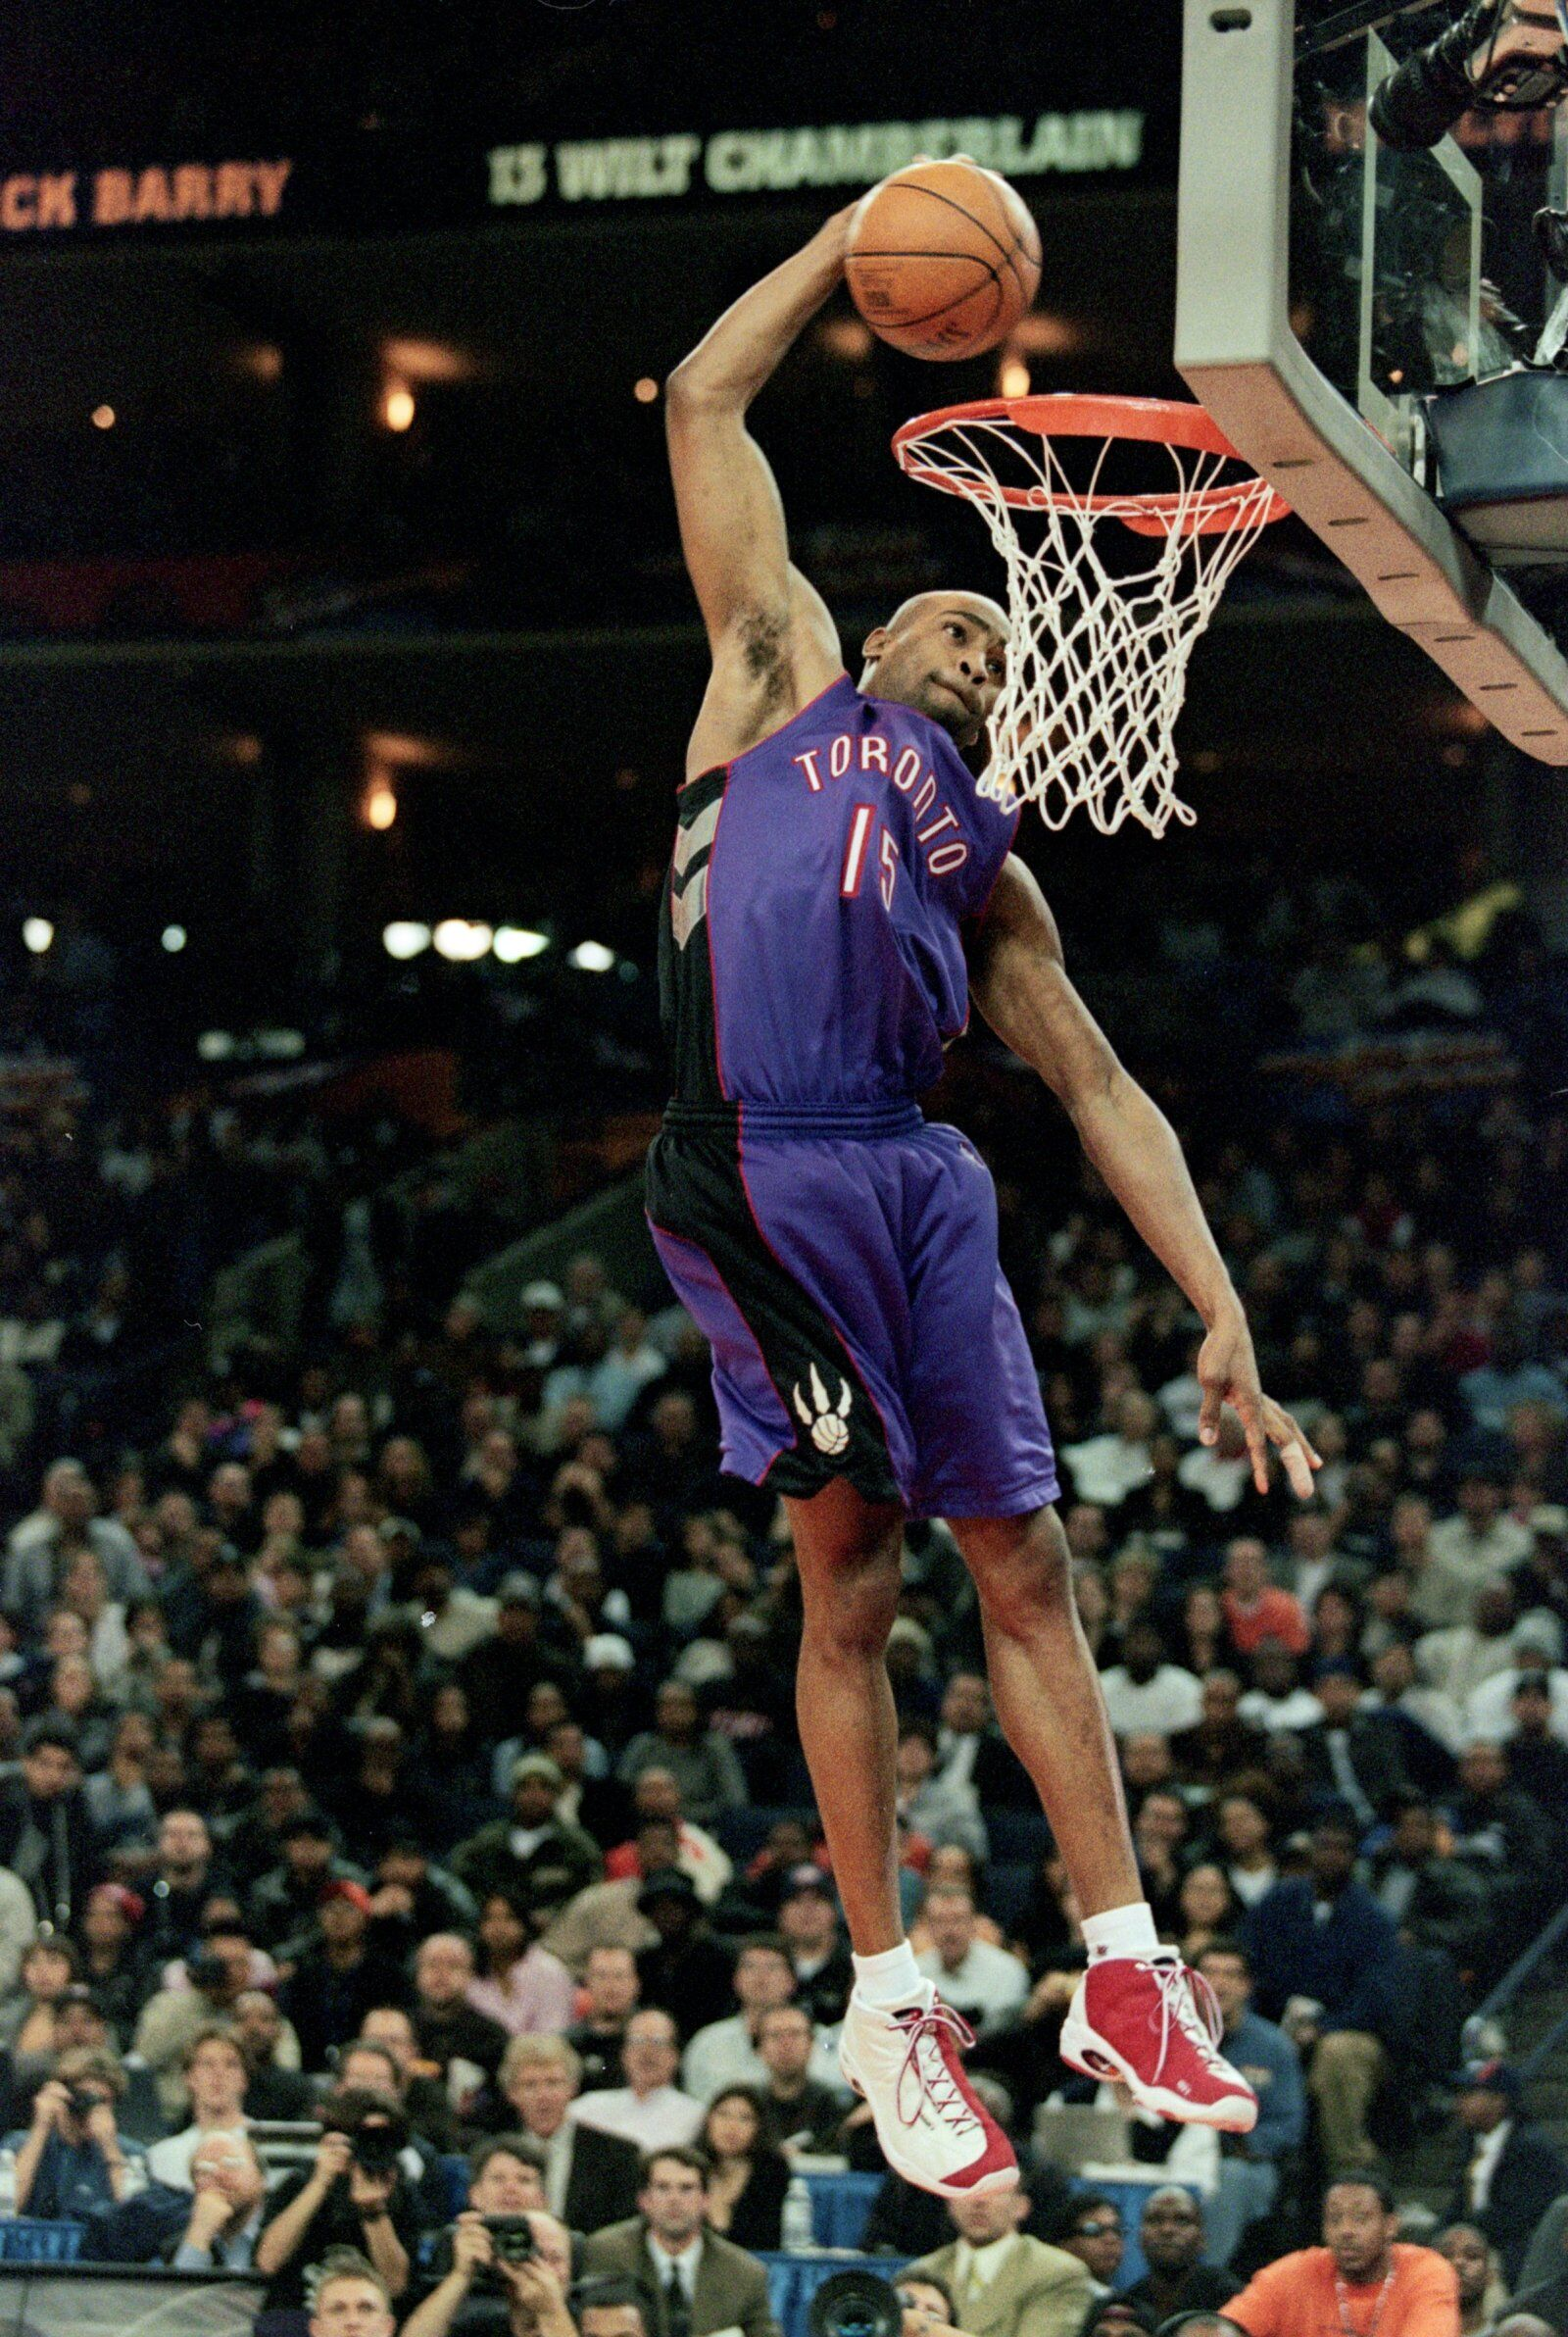 Vince Carter 15 Of The Toronto Raptors Jumps To Make The